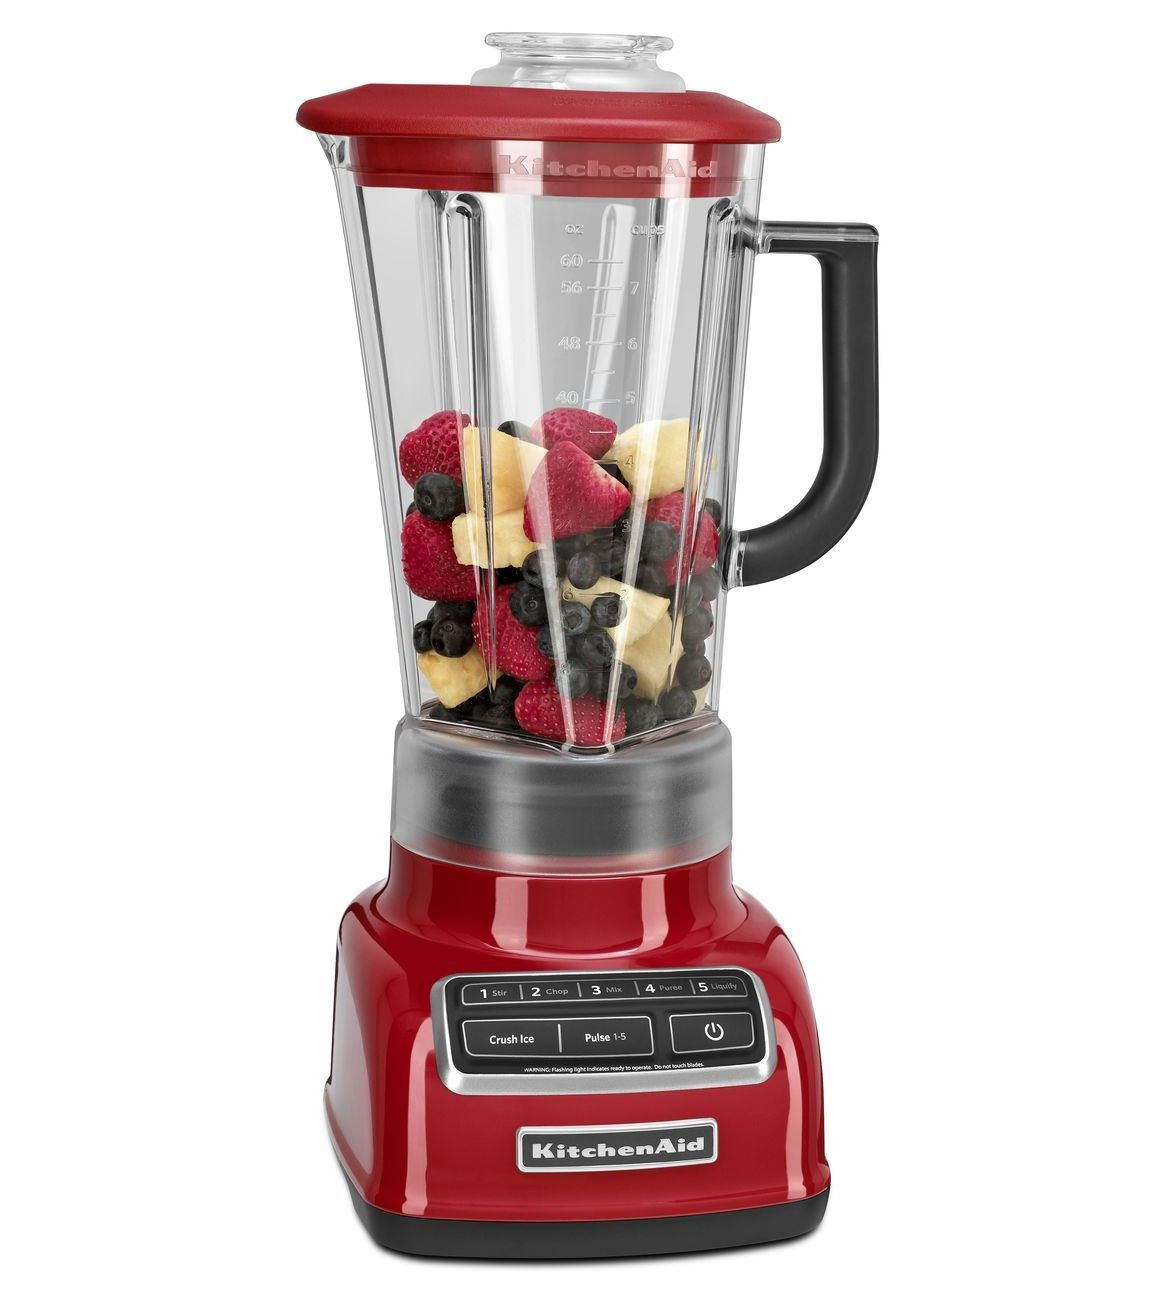 Kitchen Aid Blender For Smoothies And Cake Mix